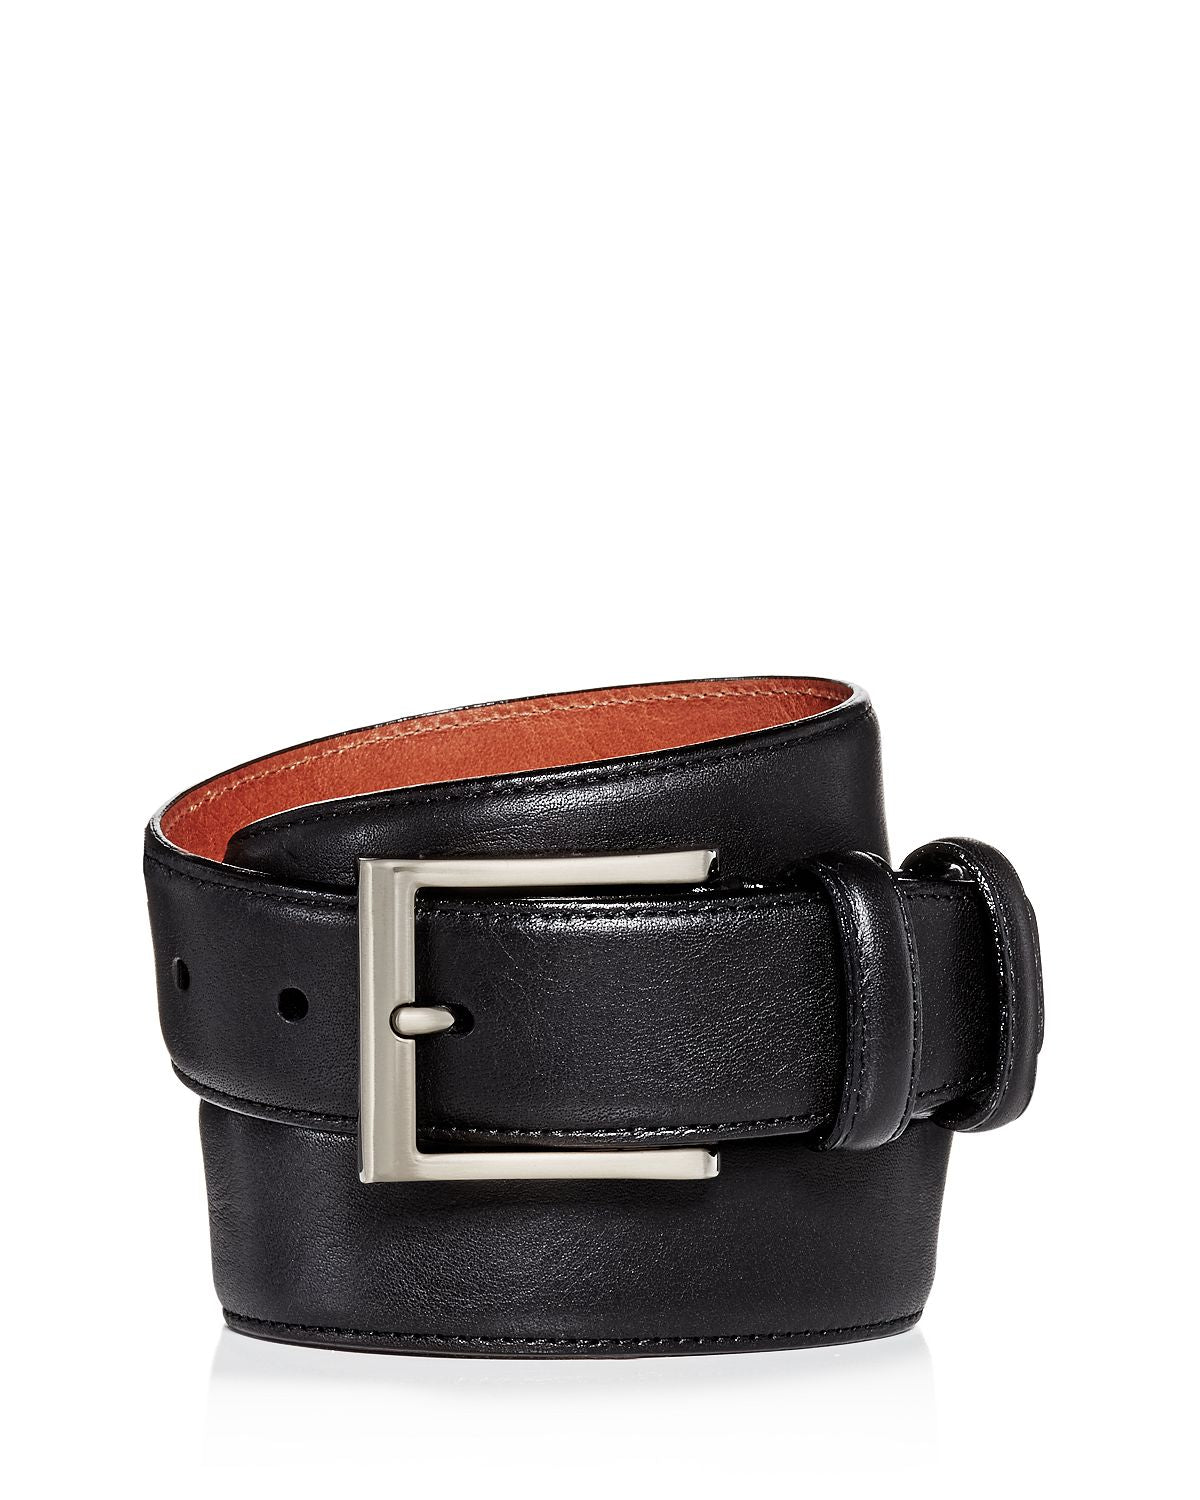 Trafalgar Corvino Double-keeper Leather Belt Black